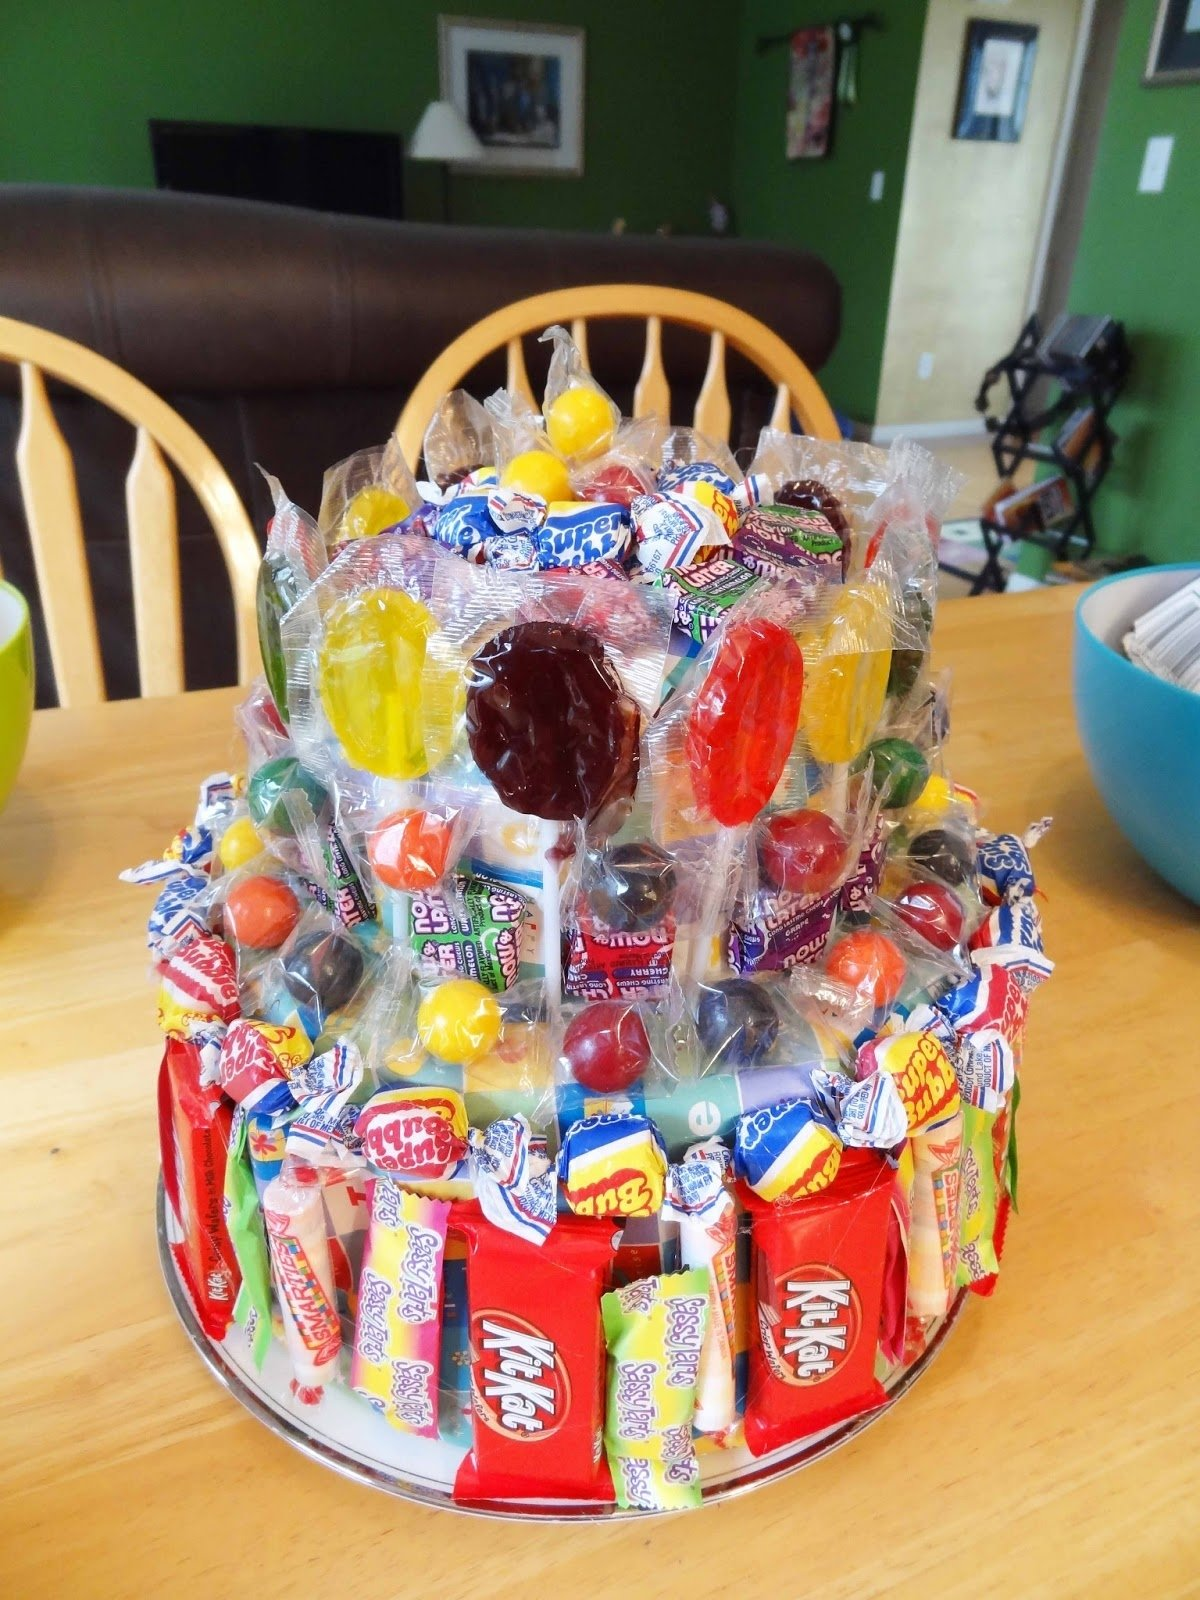 10 Great 14 Year Old Birthday Party Ideas teen birthday party crafty leslies blog 4 2021